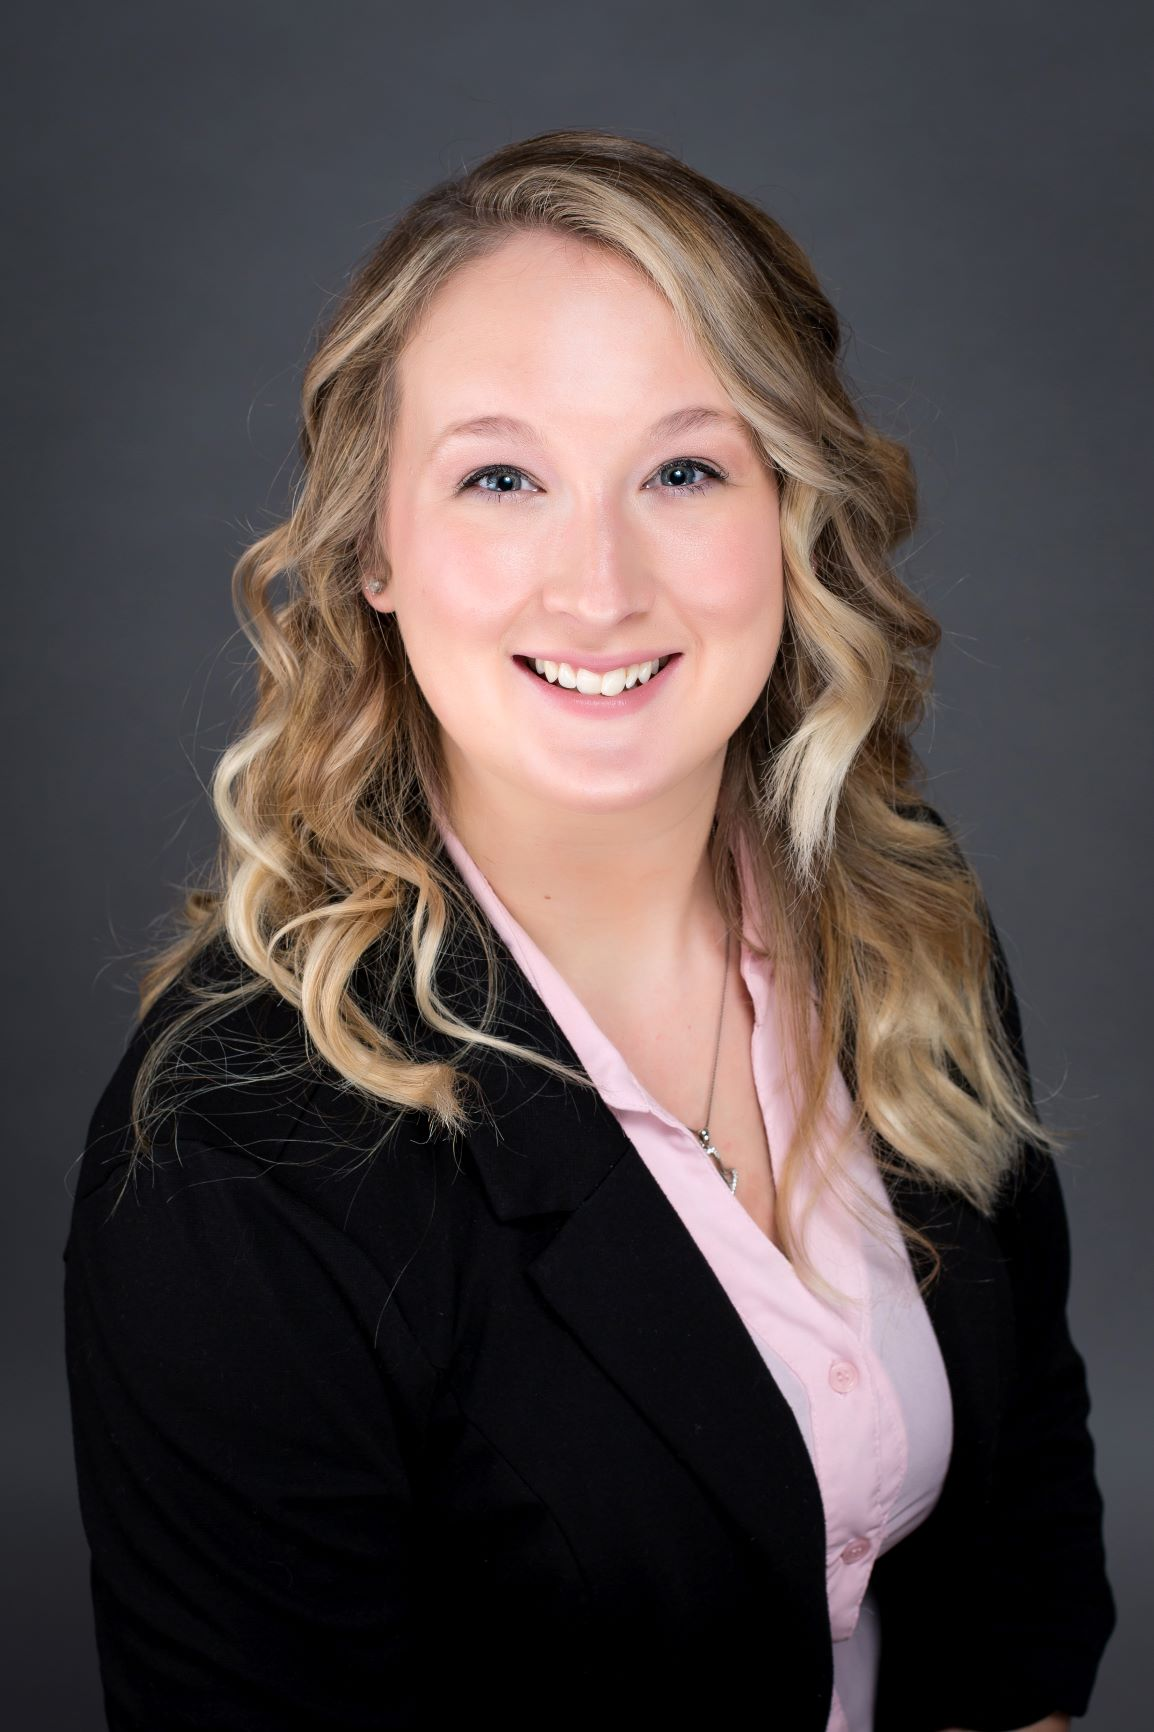 Briana Pelland Joins Mortgage Team at Ideal Credit Union